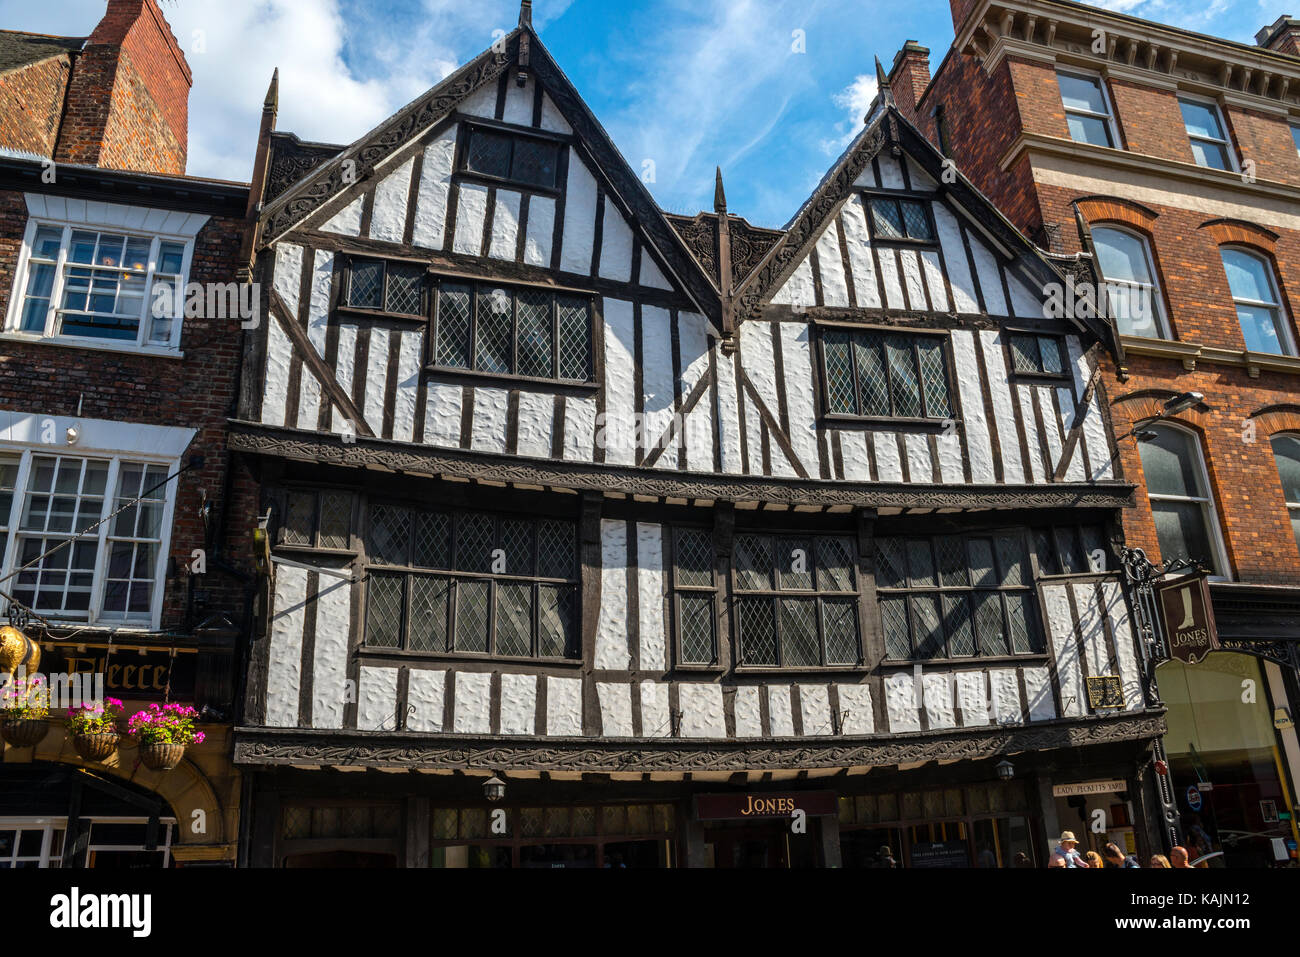 Decorated Medieval Shop Front, The Shambles, York - Stock Image